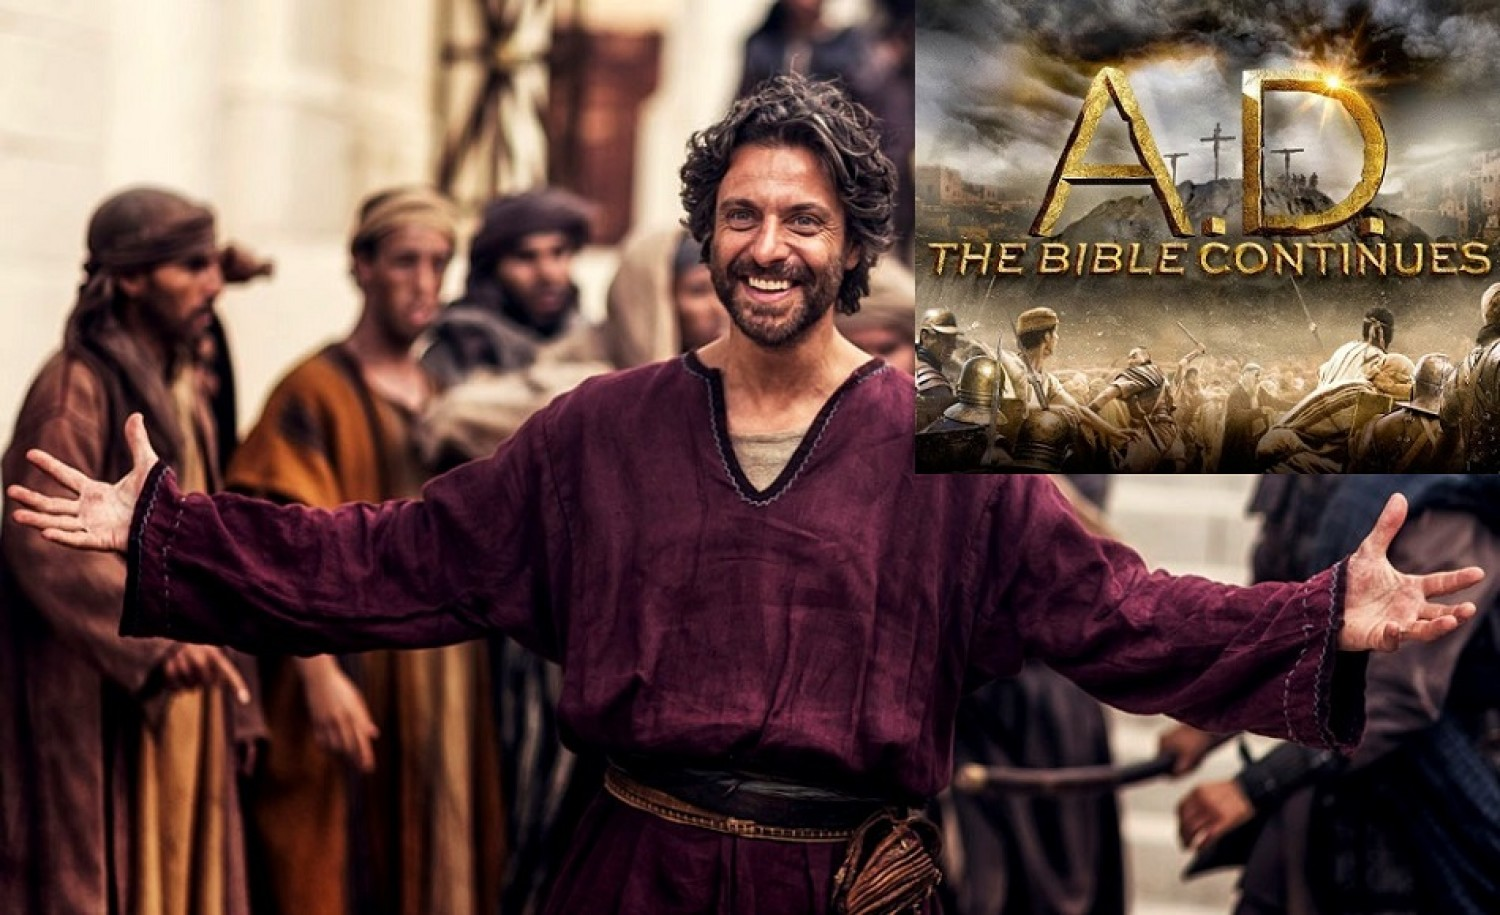 Recap & Review - Episode 3 / A.D. The Bible Continues